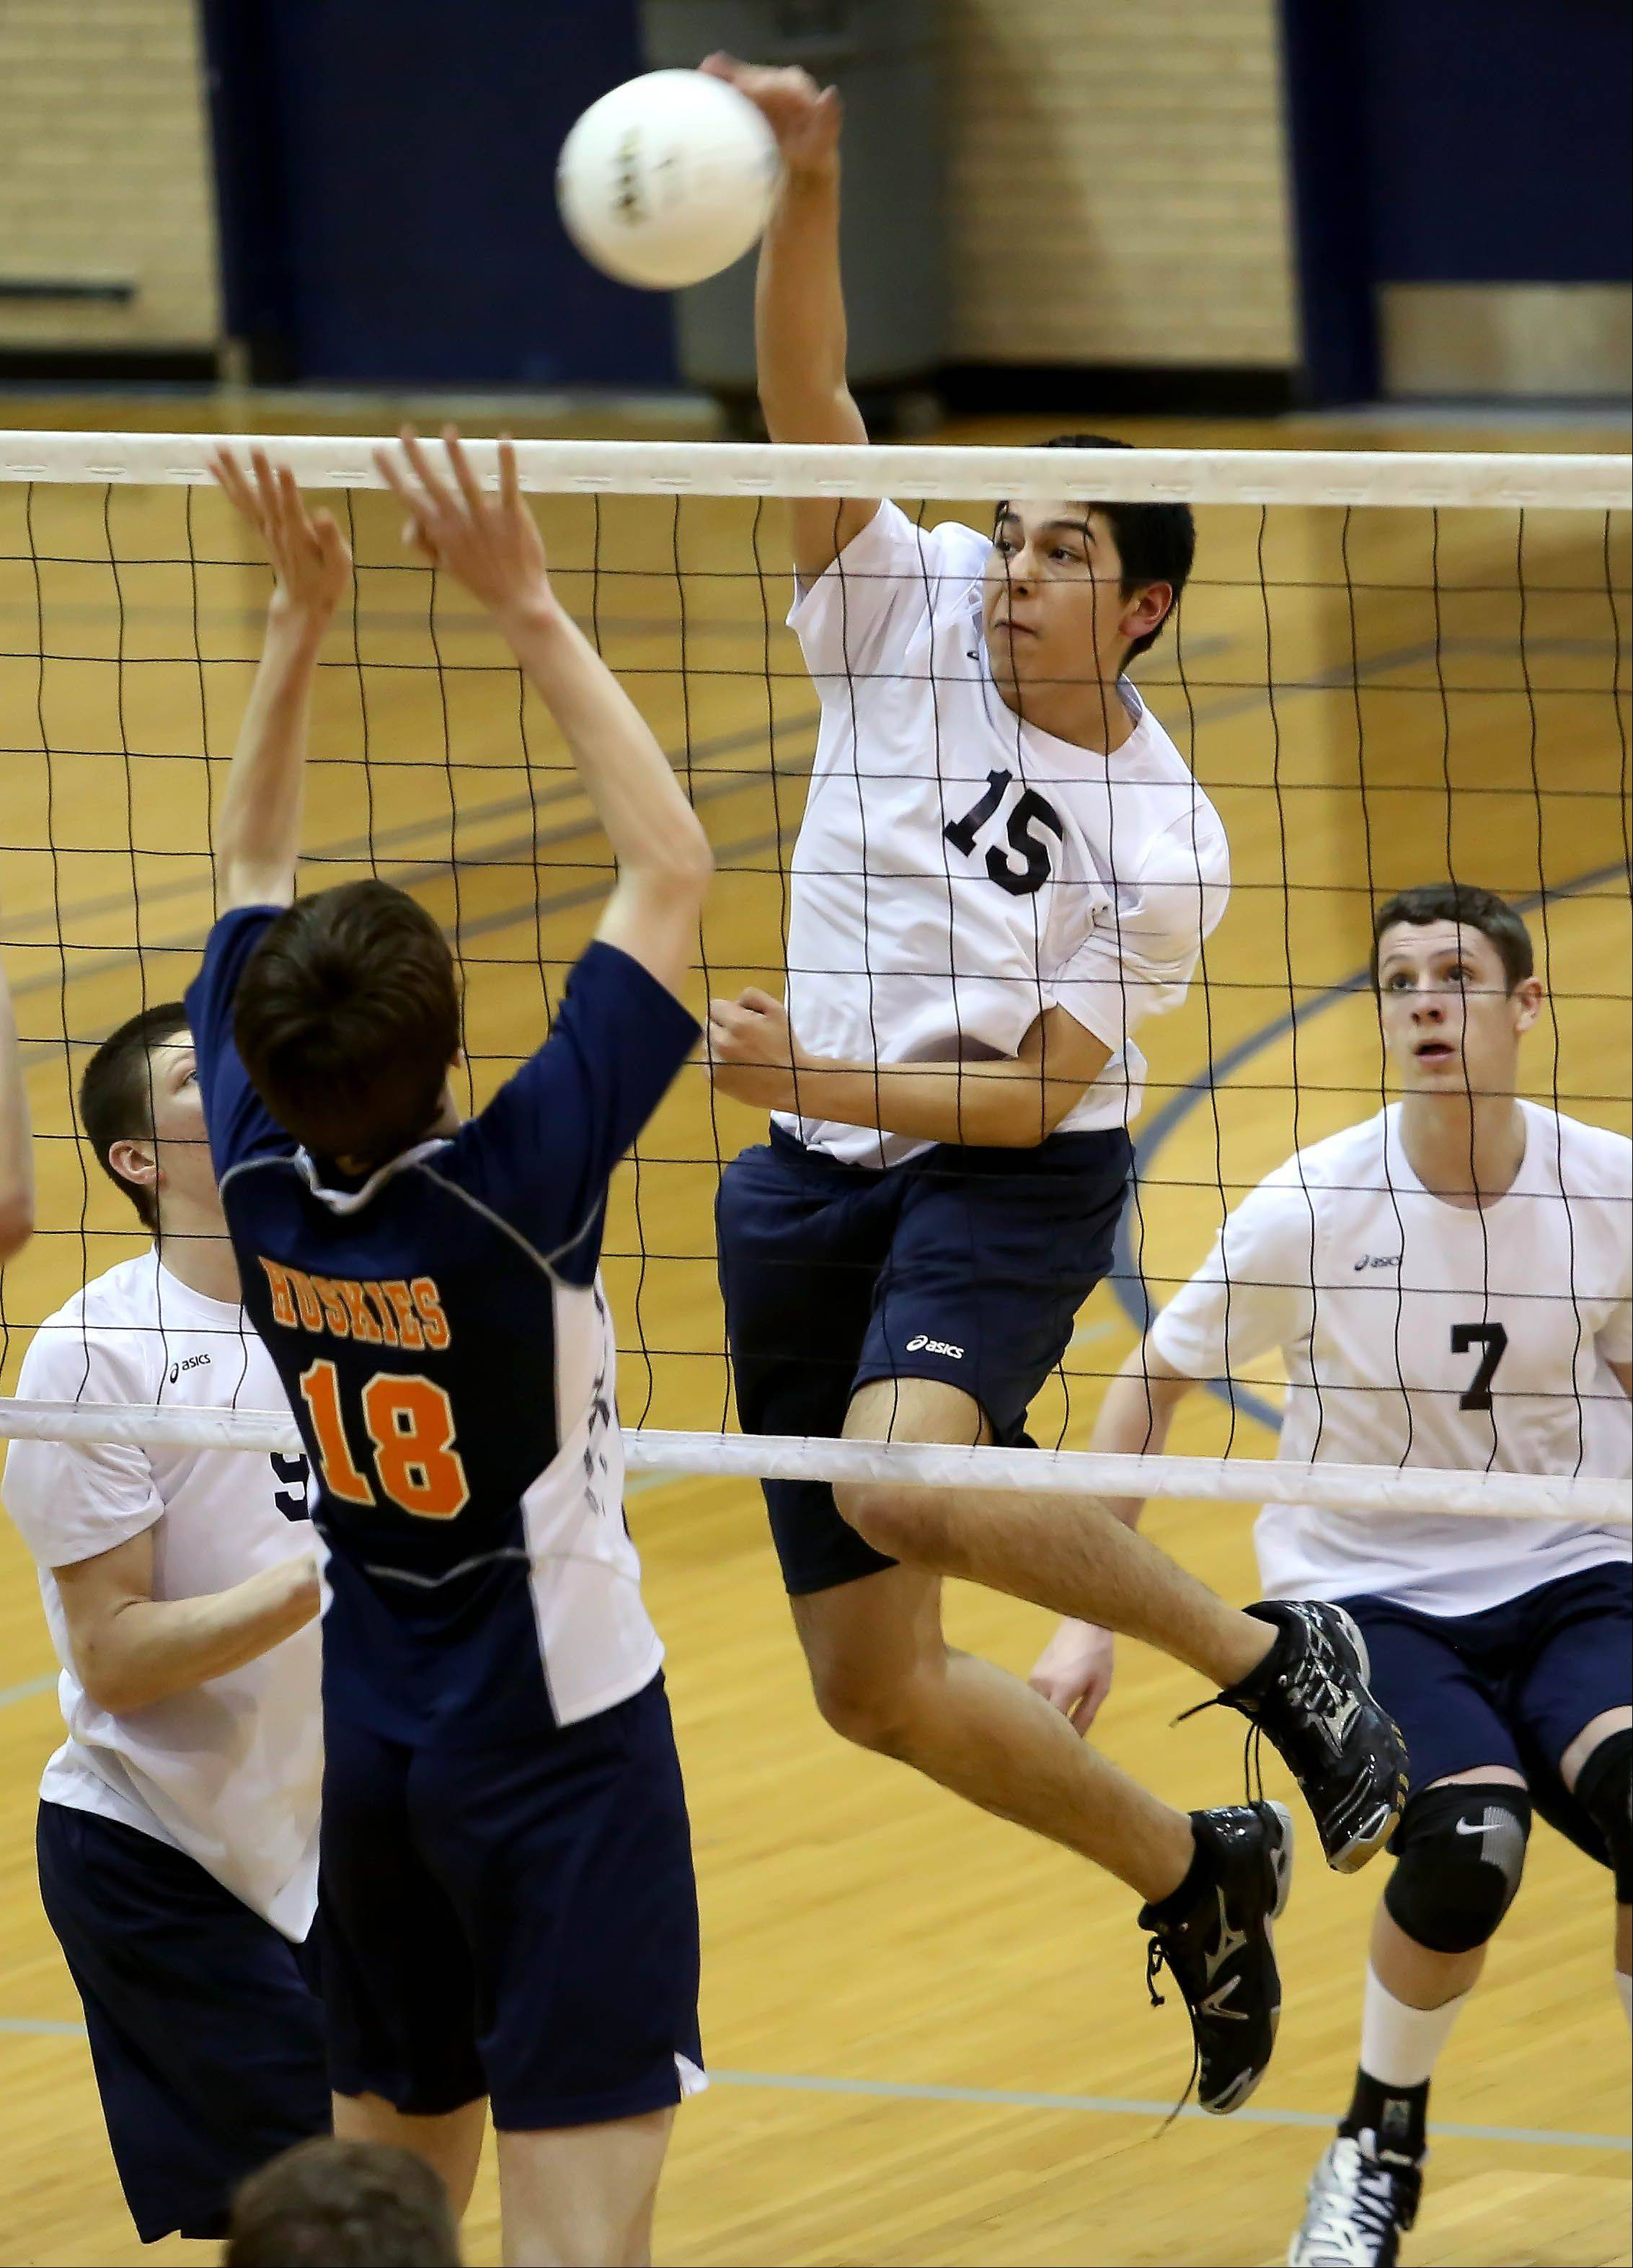 Frank Gonzalez of Addison Trail goes up to spike the ball in action against Oak Park River Forest during boys volleyball on Monday in Addison.